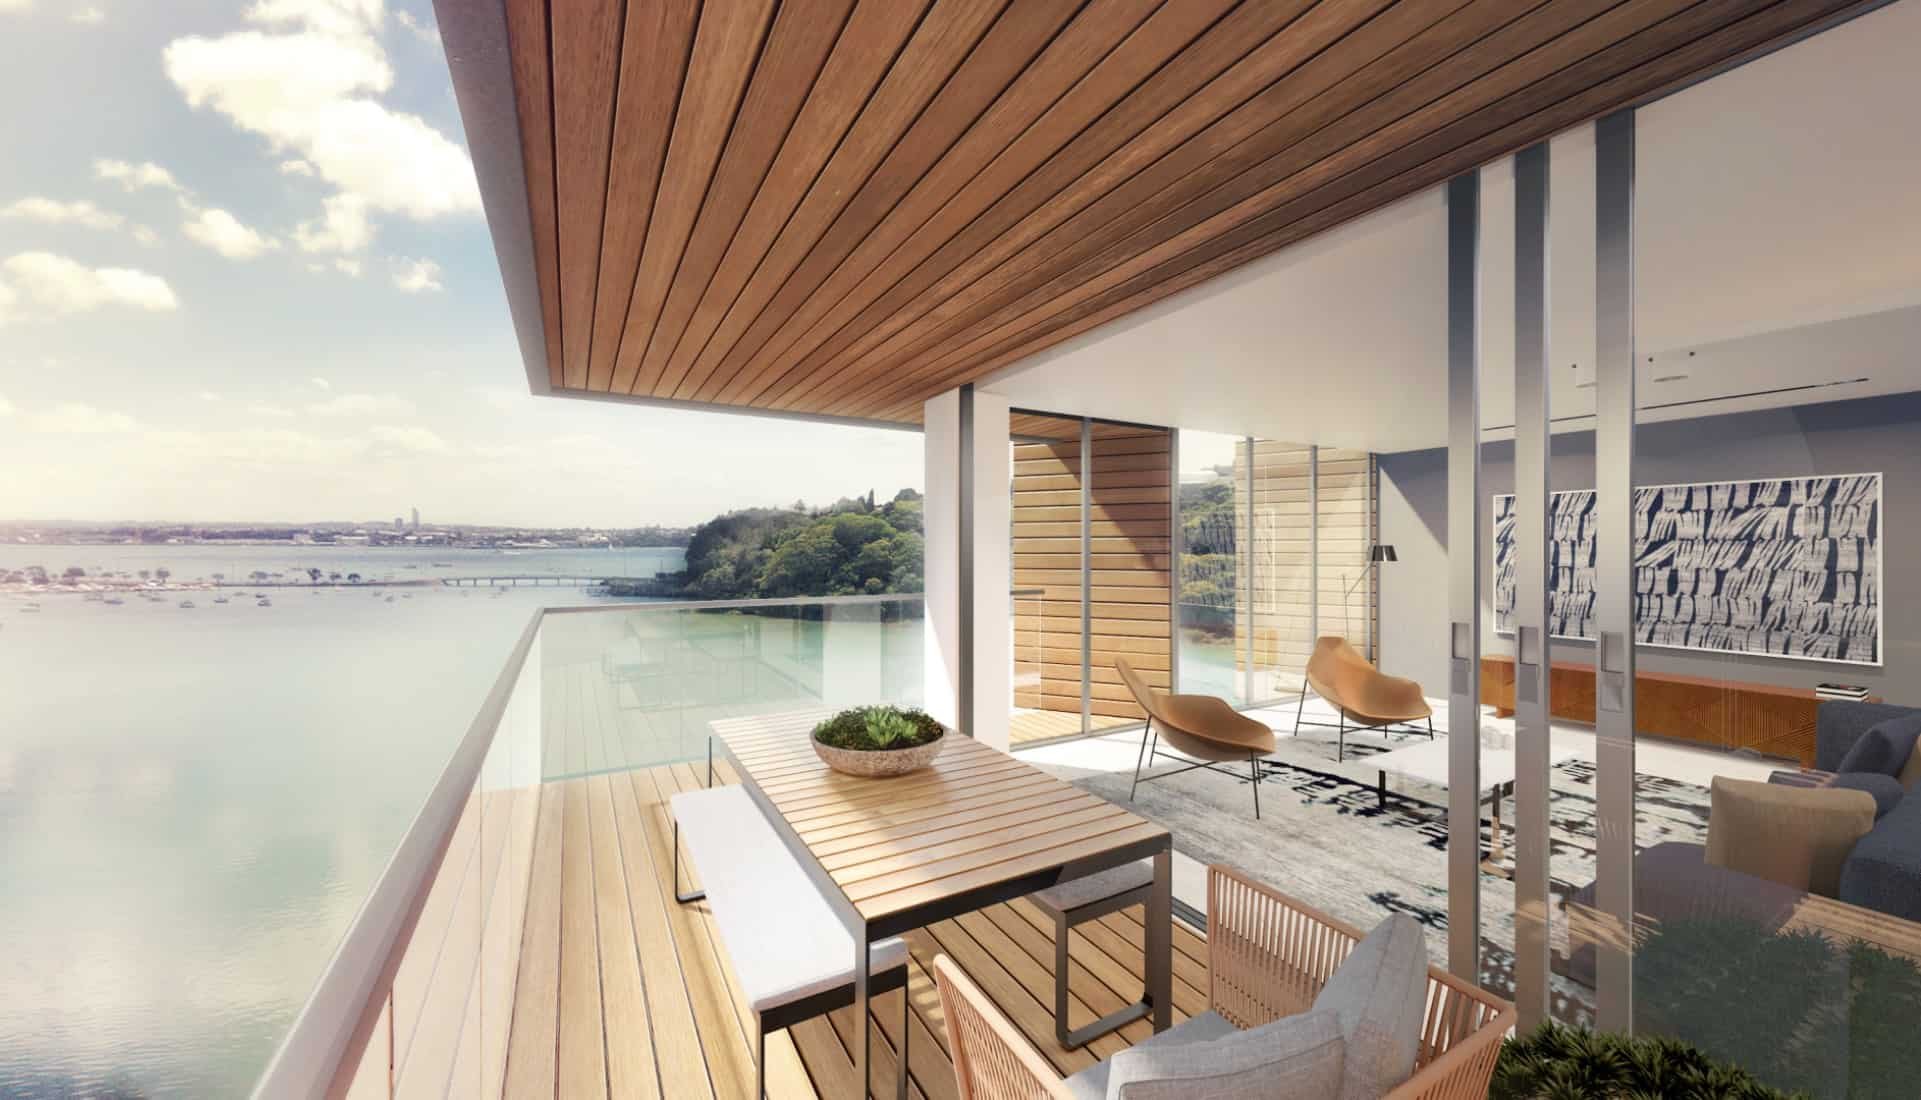 Orakei residential Apartments in Auckland drawing for the design of the deck with a view of the water in the background